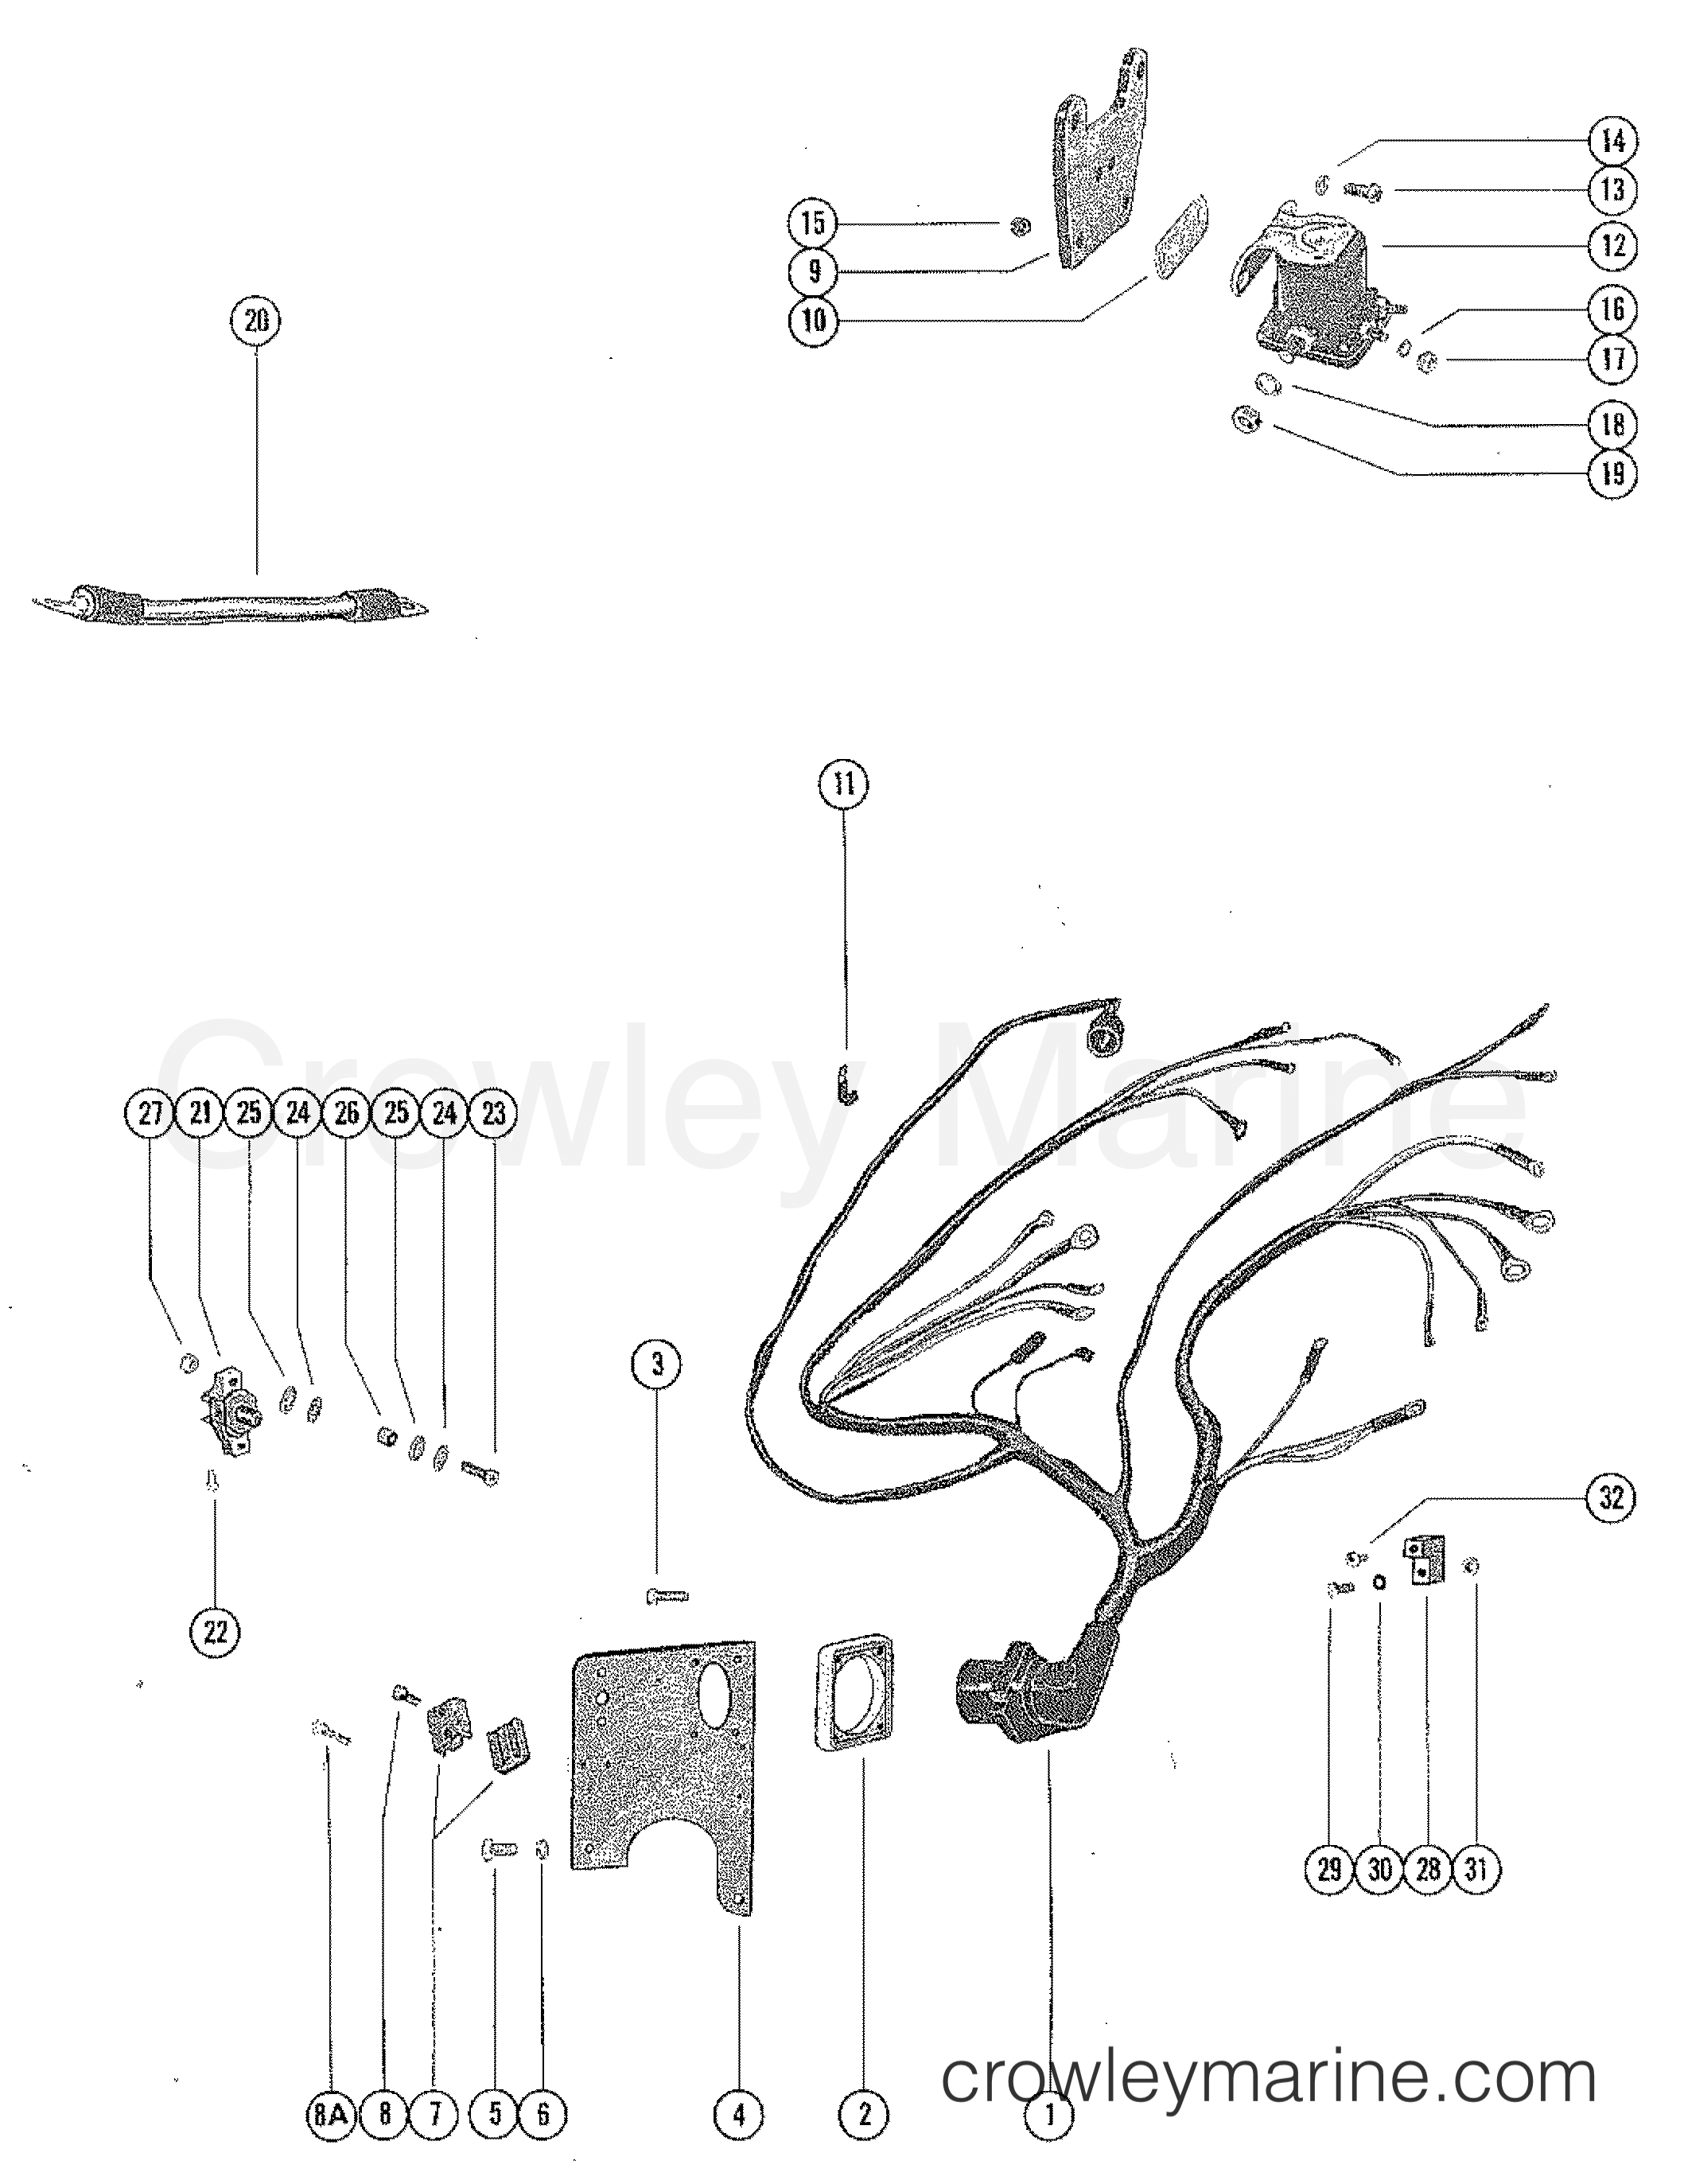 1974 Ford 302 Wiring Harness Diagram Schematics Engine Circuit Breaker Startr Solenoid Stern Dr Rh Crowleymarine Com